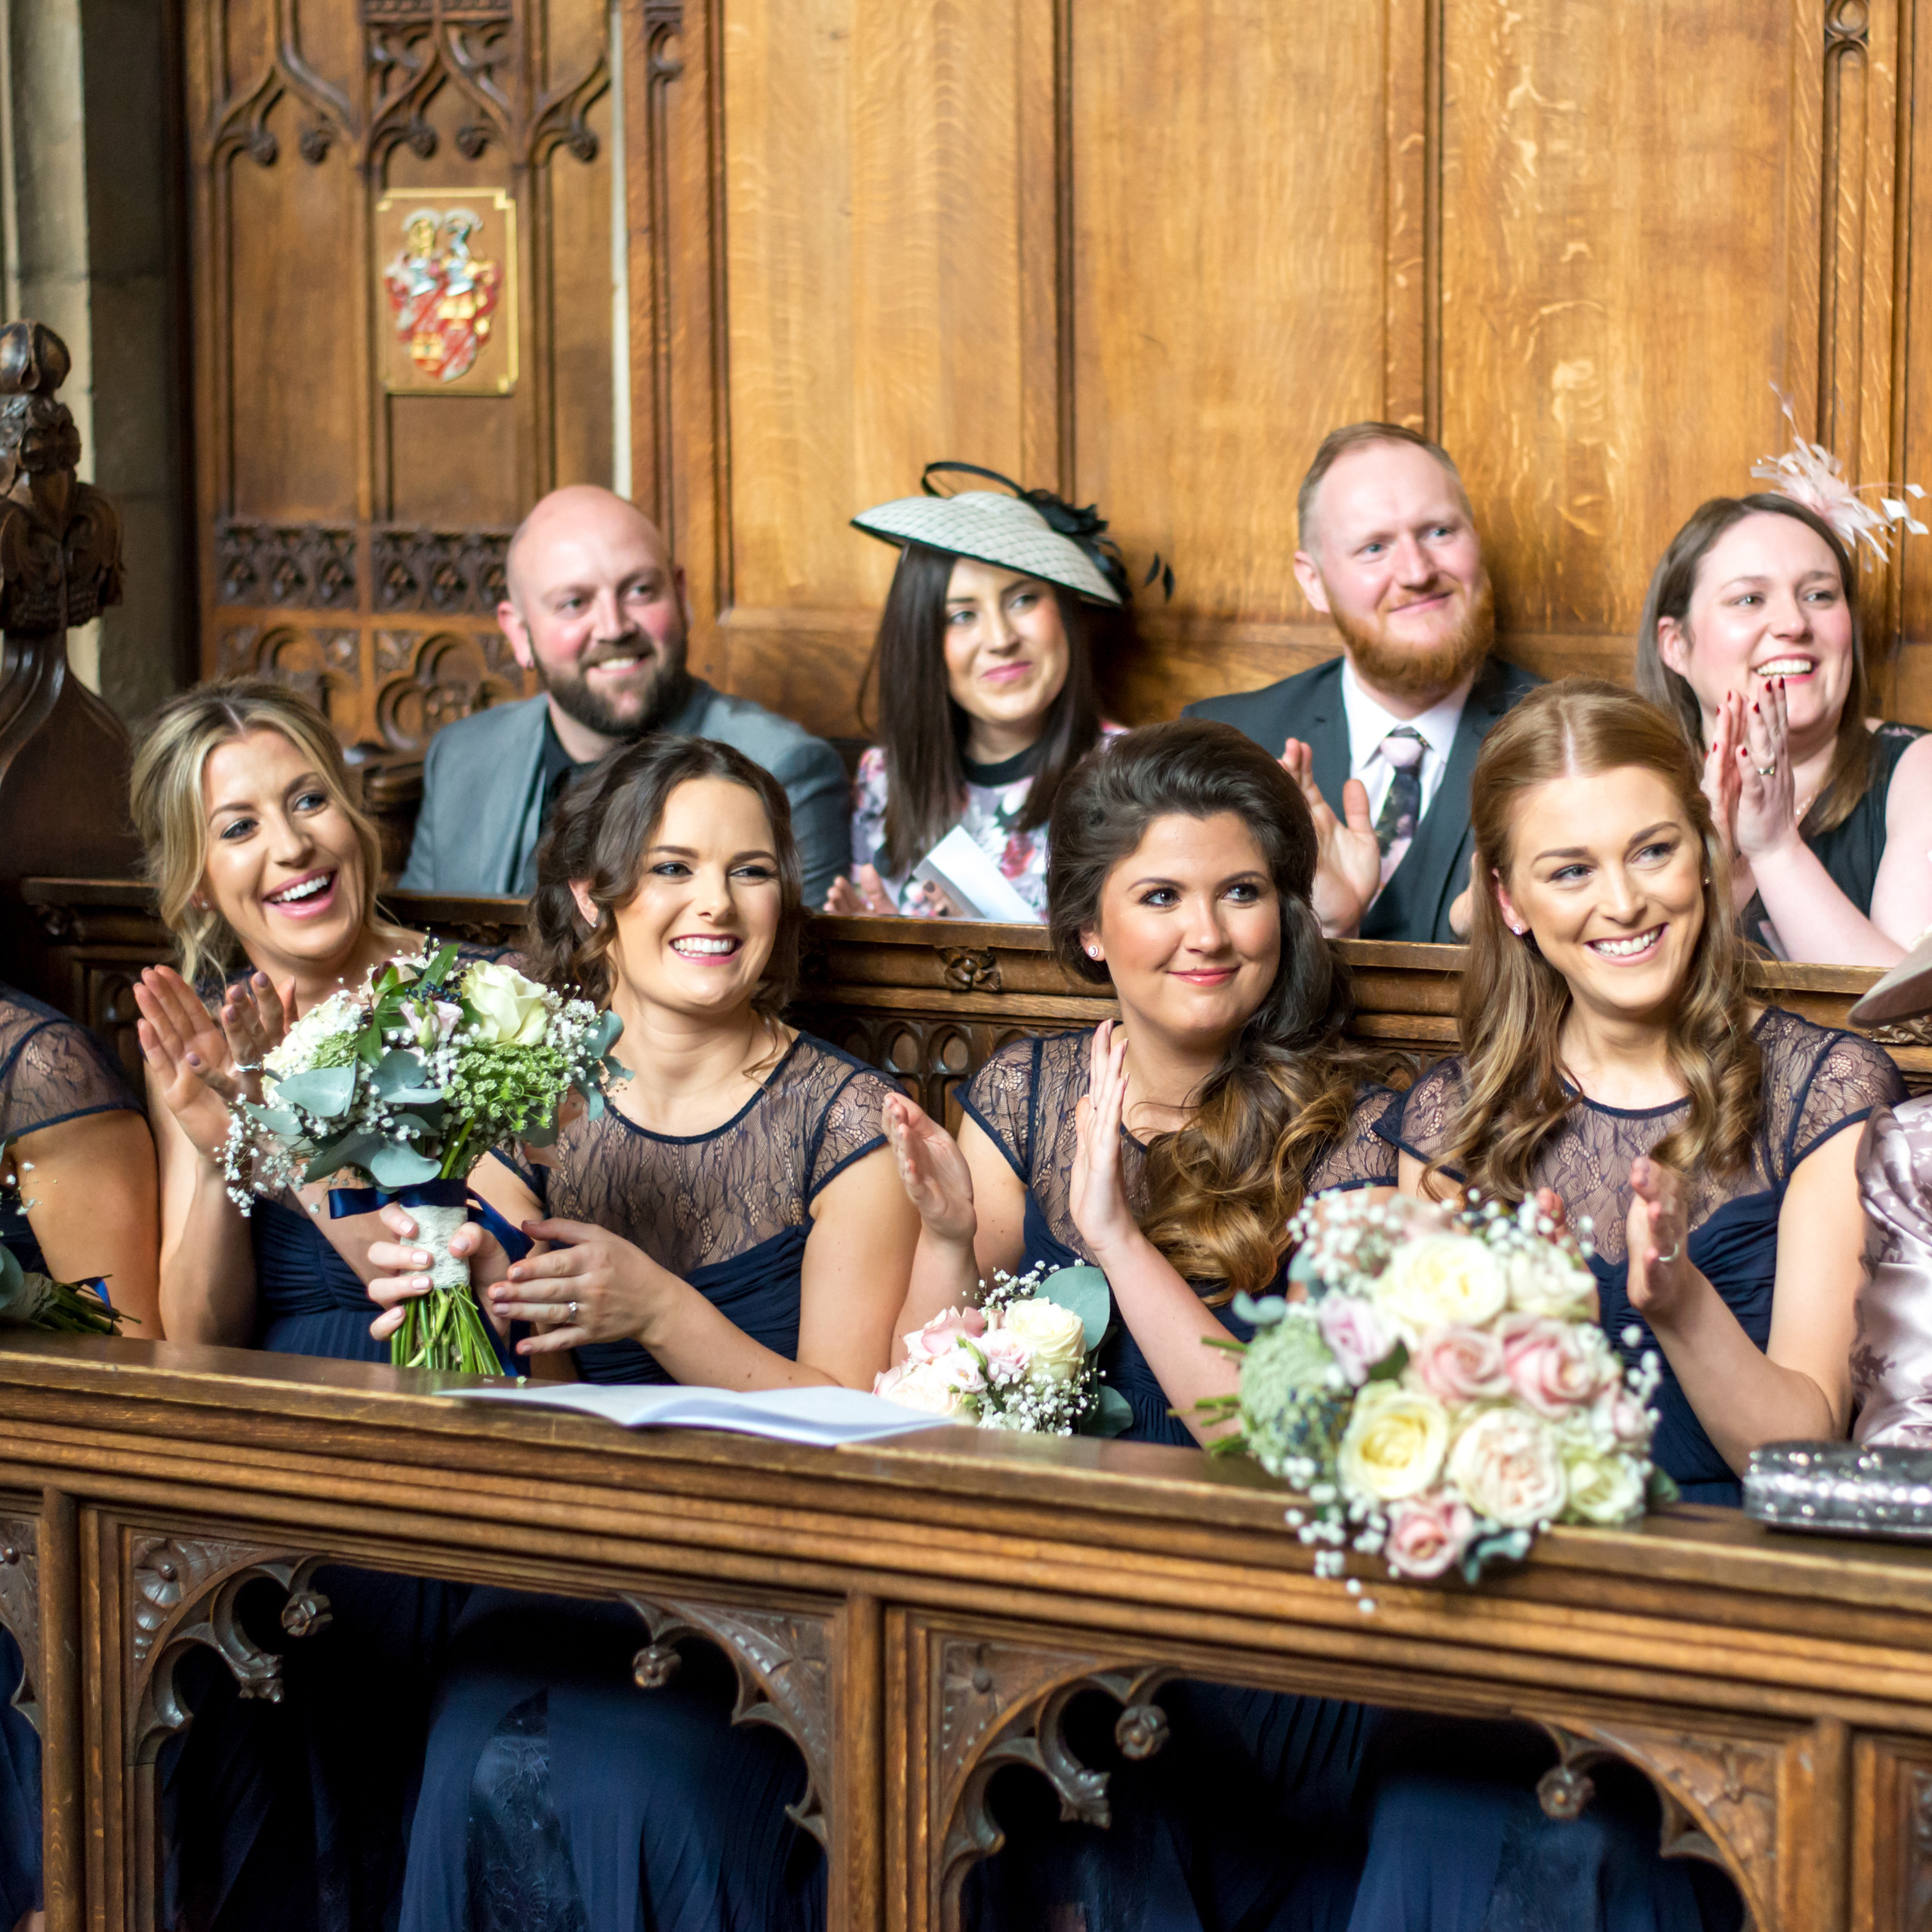 Photograph of bridesmaids and guests smiling and clapping the bride and groom at the end of the wedding ceremony in the Tunstall Chapel of Durham Castle on day of wedding ceremony